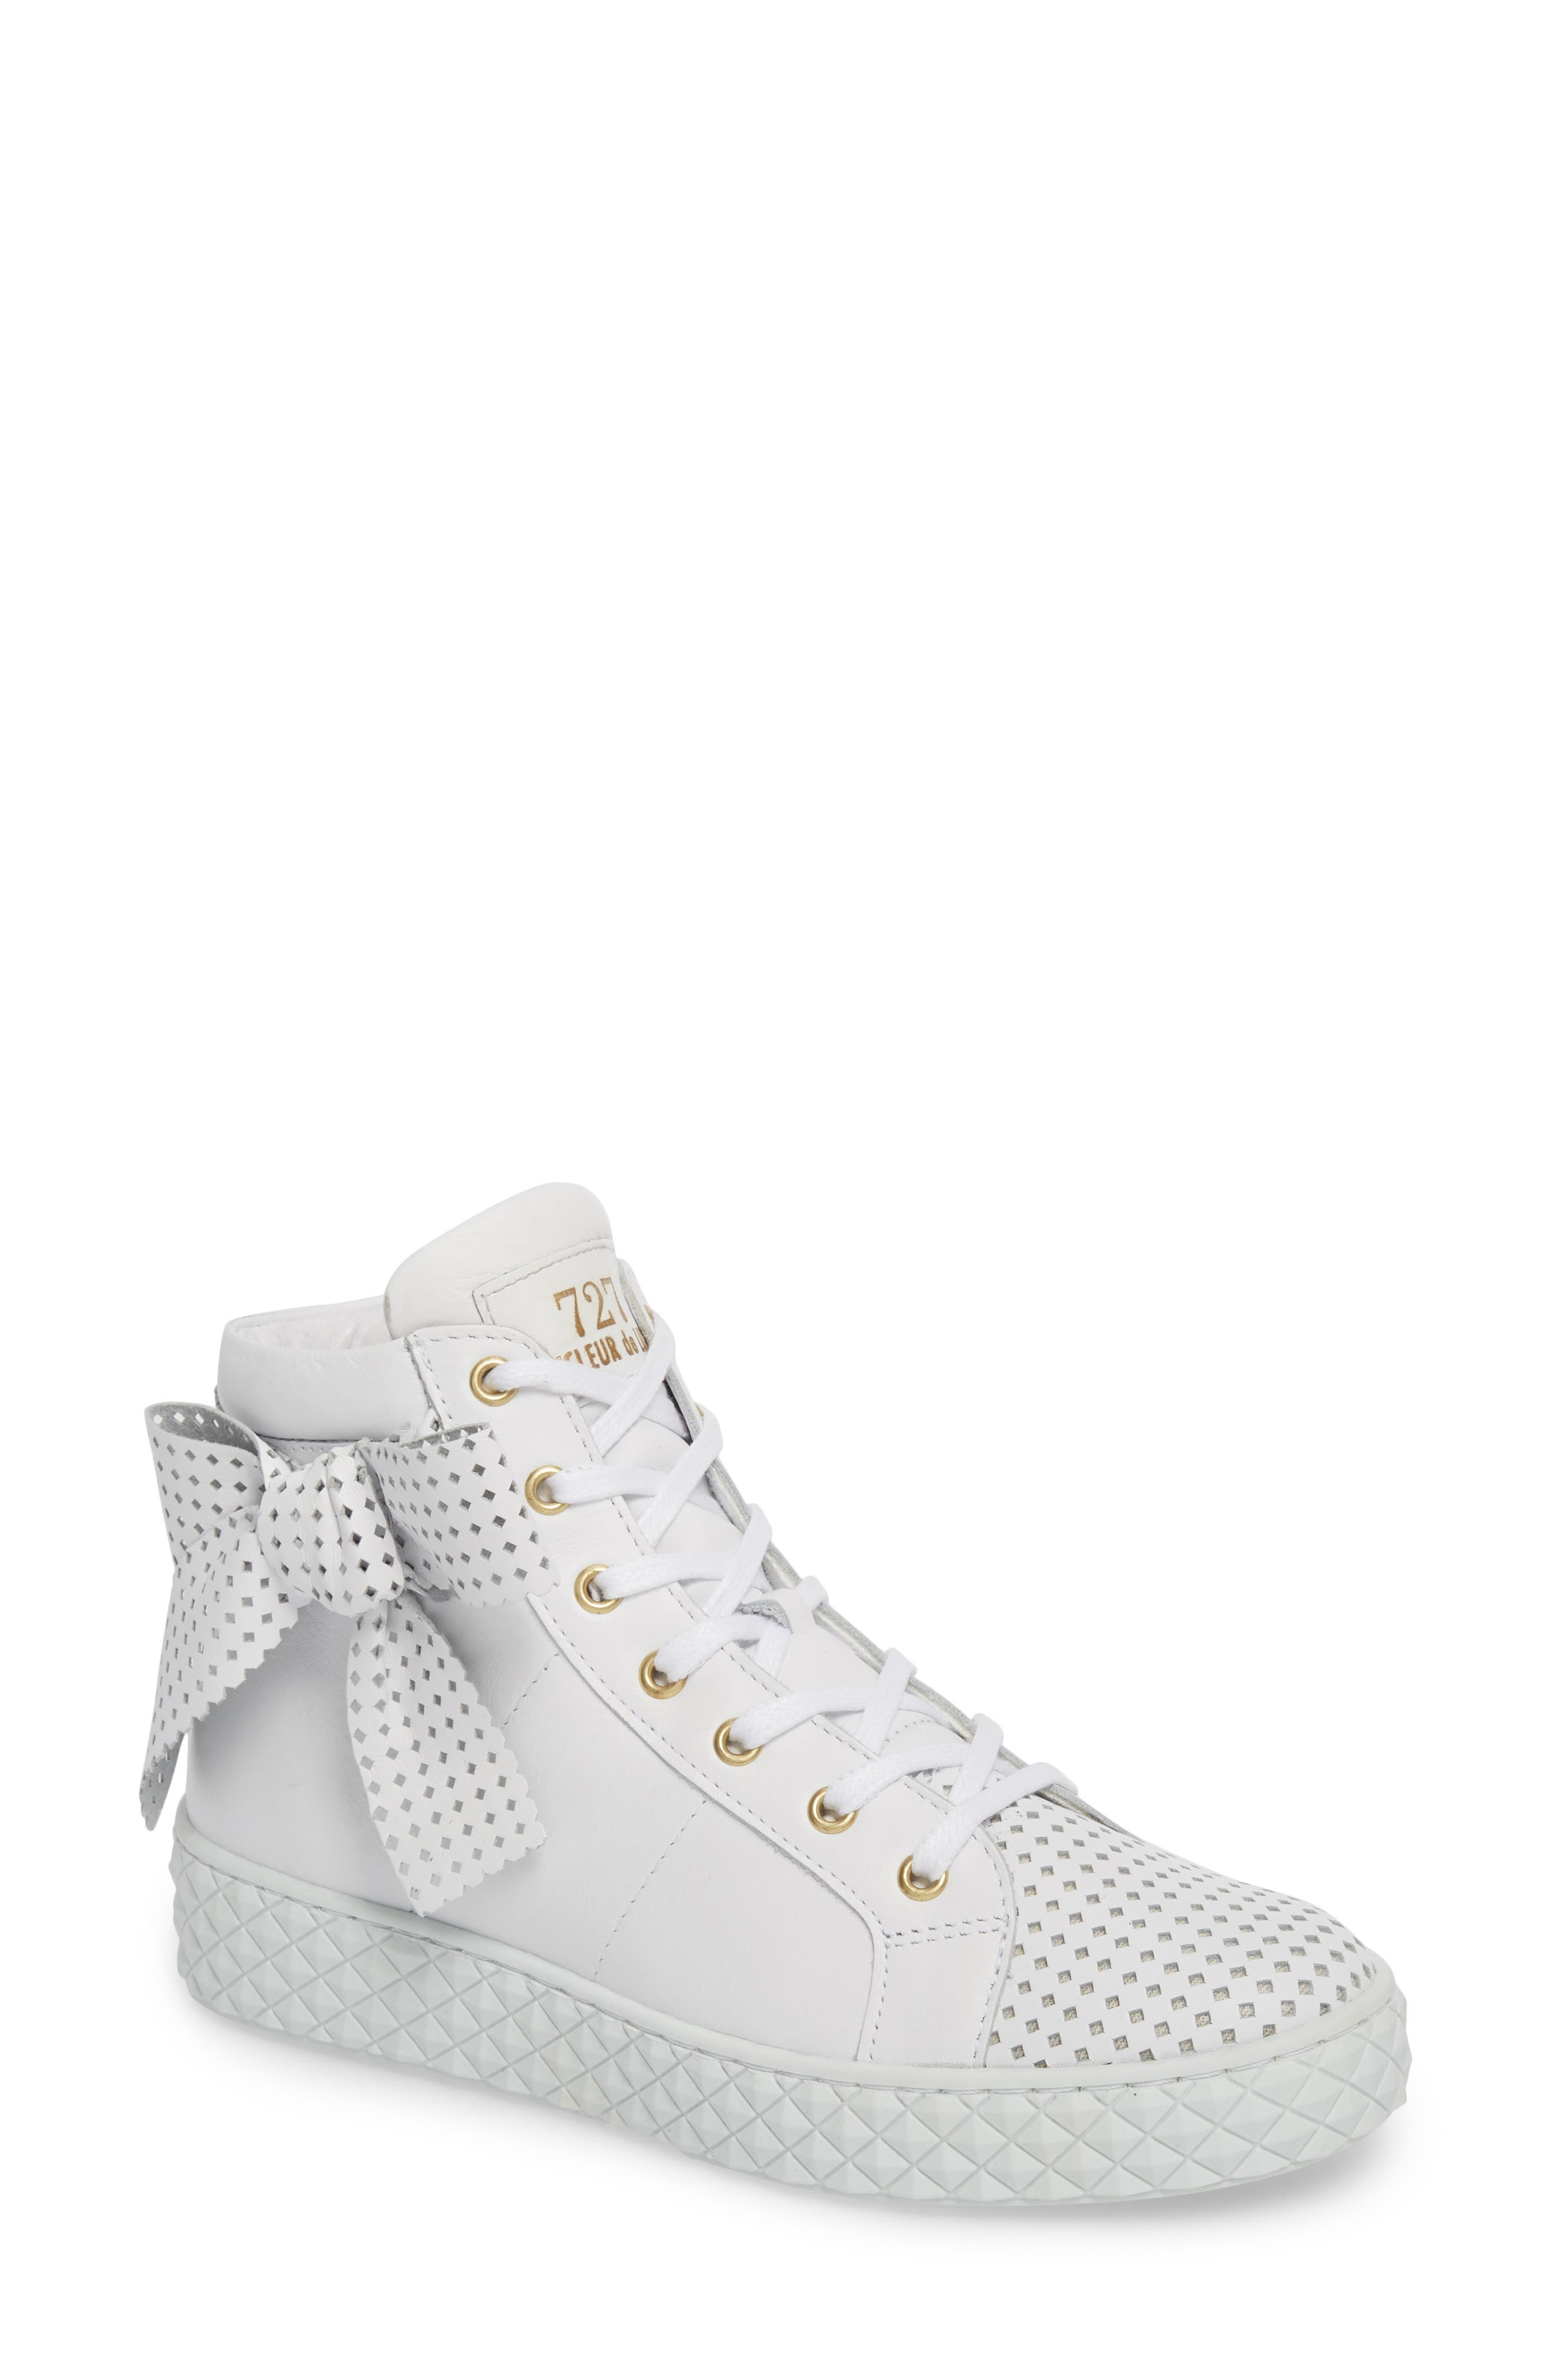 Avery High Top Sneaker,                             Main thumbnail 1, color,                             WHITE LEATHER